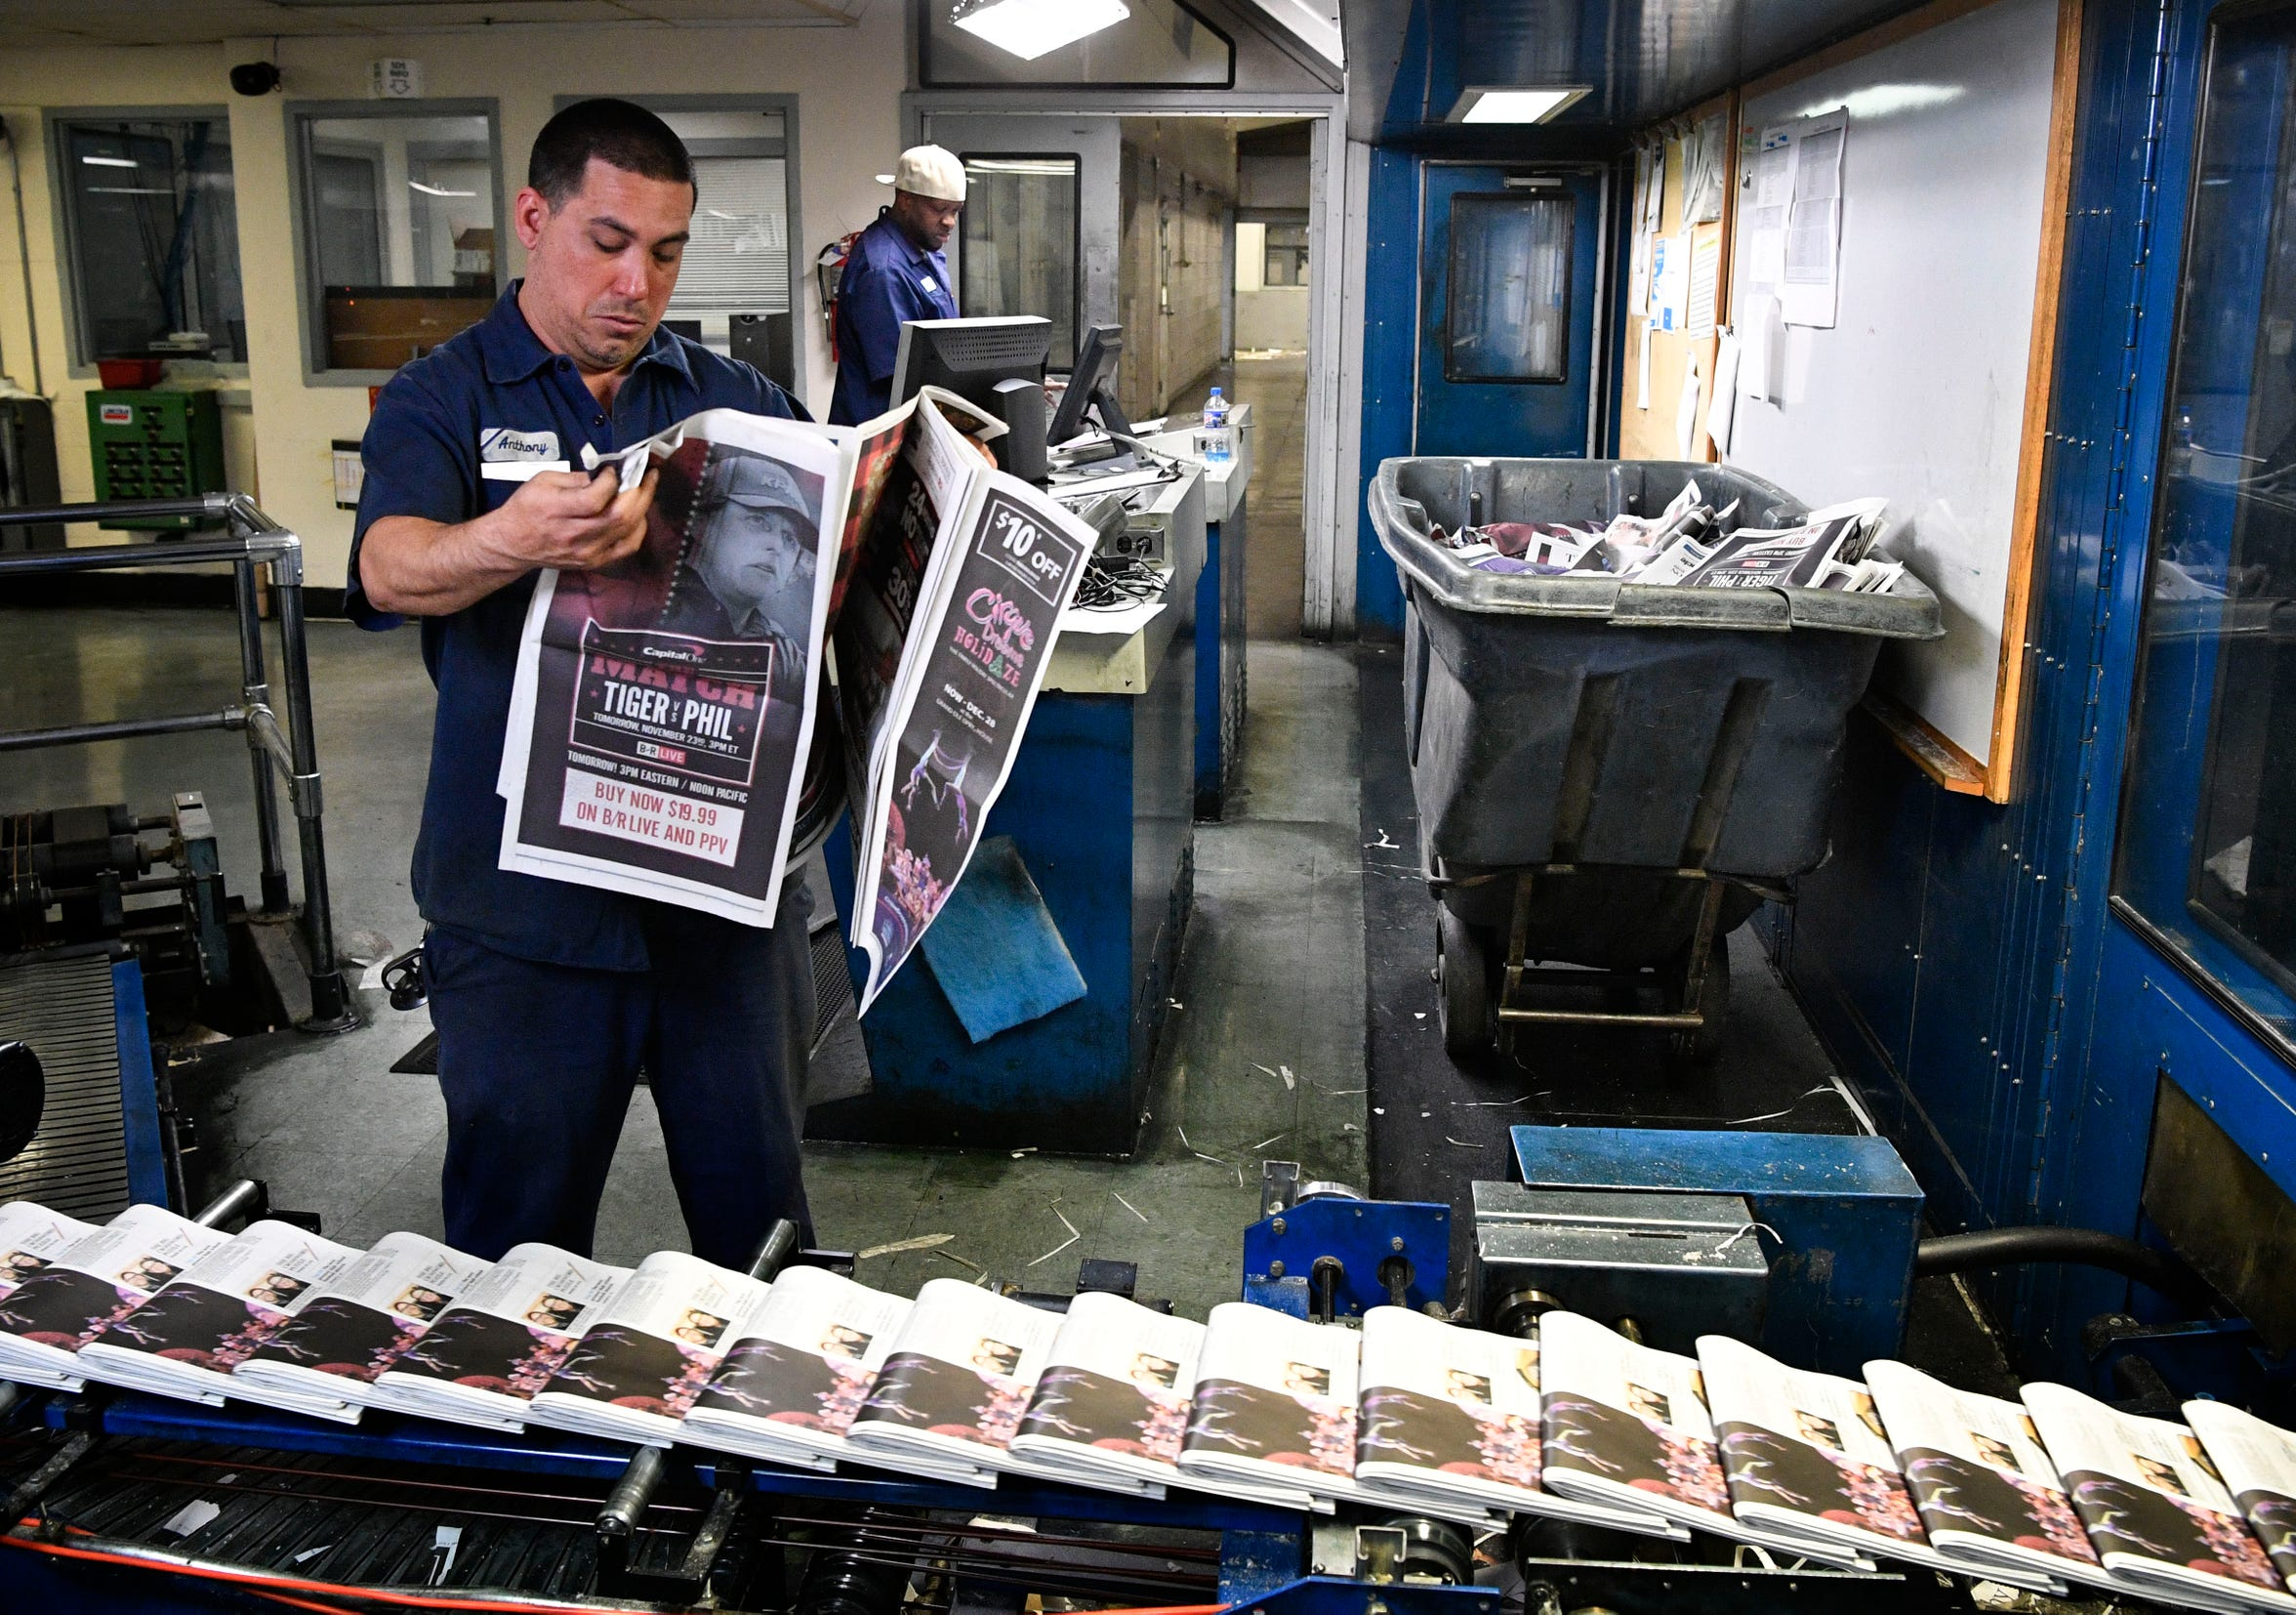 Anthony Felder checks Tennessean's Thanksgiving editions as they come off the press Wednesday, Nov. 21, 2018, in Nashville, Tenn.